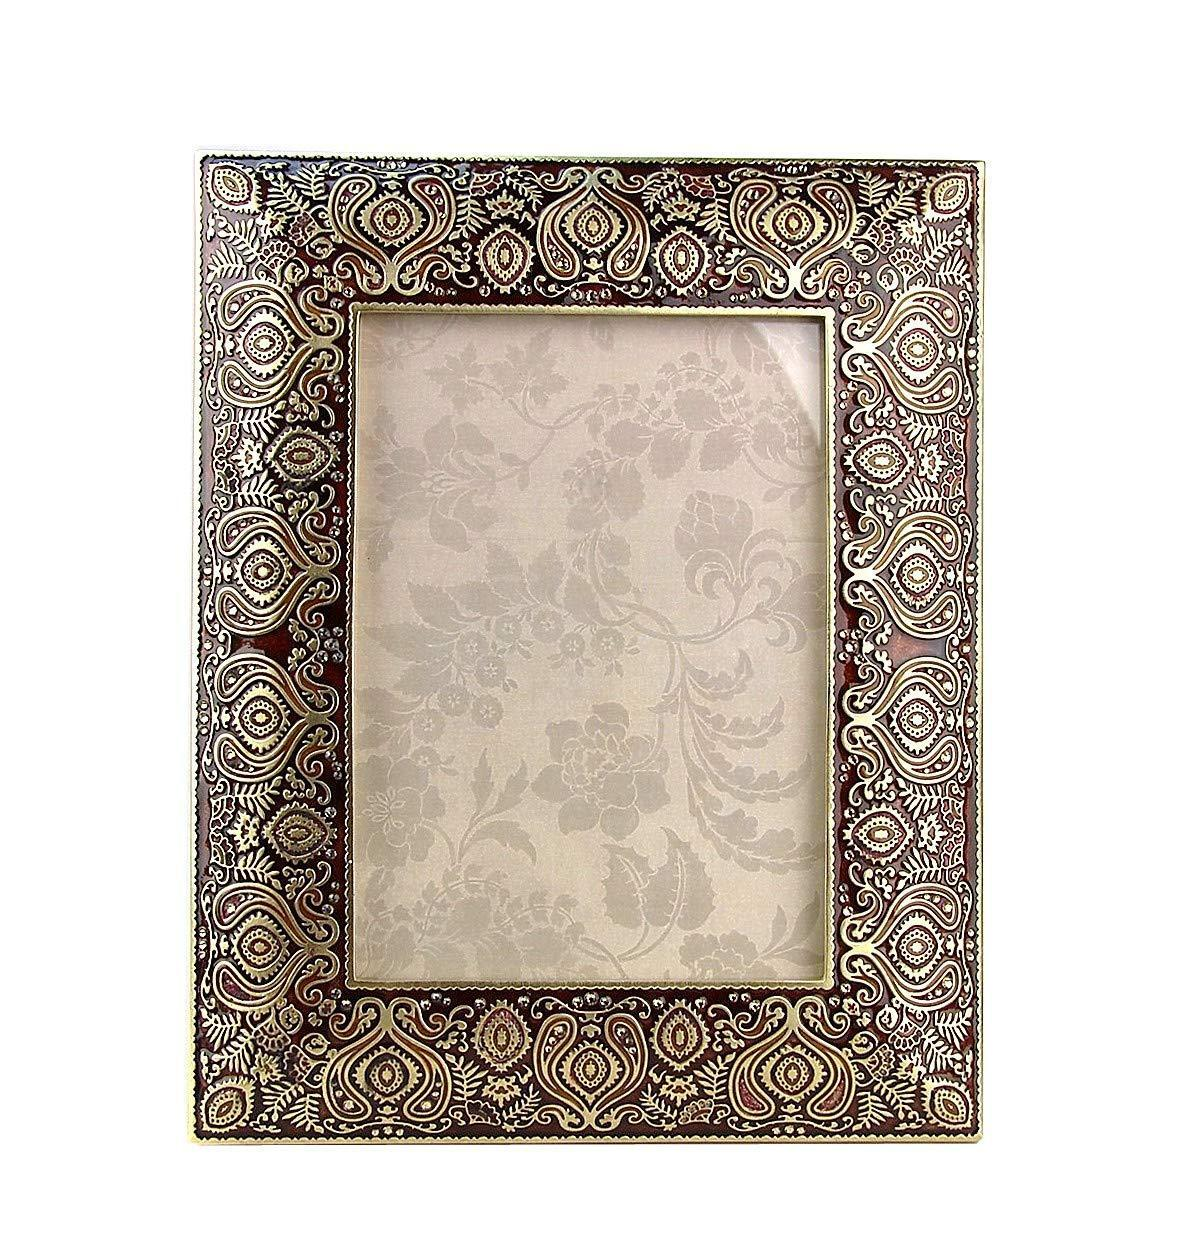 5 x 7 PHOTO Brocade Gold Burgundy Frame - Jay Strongwater 1 2